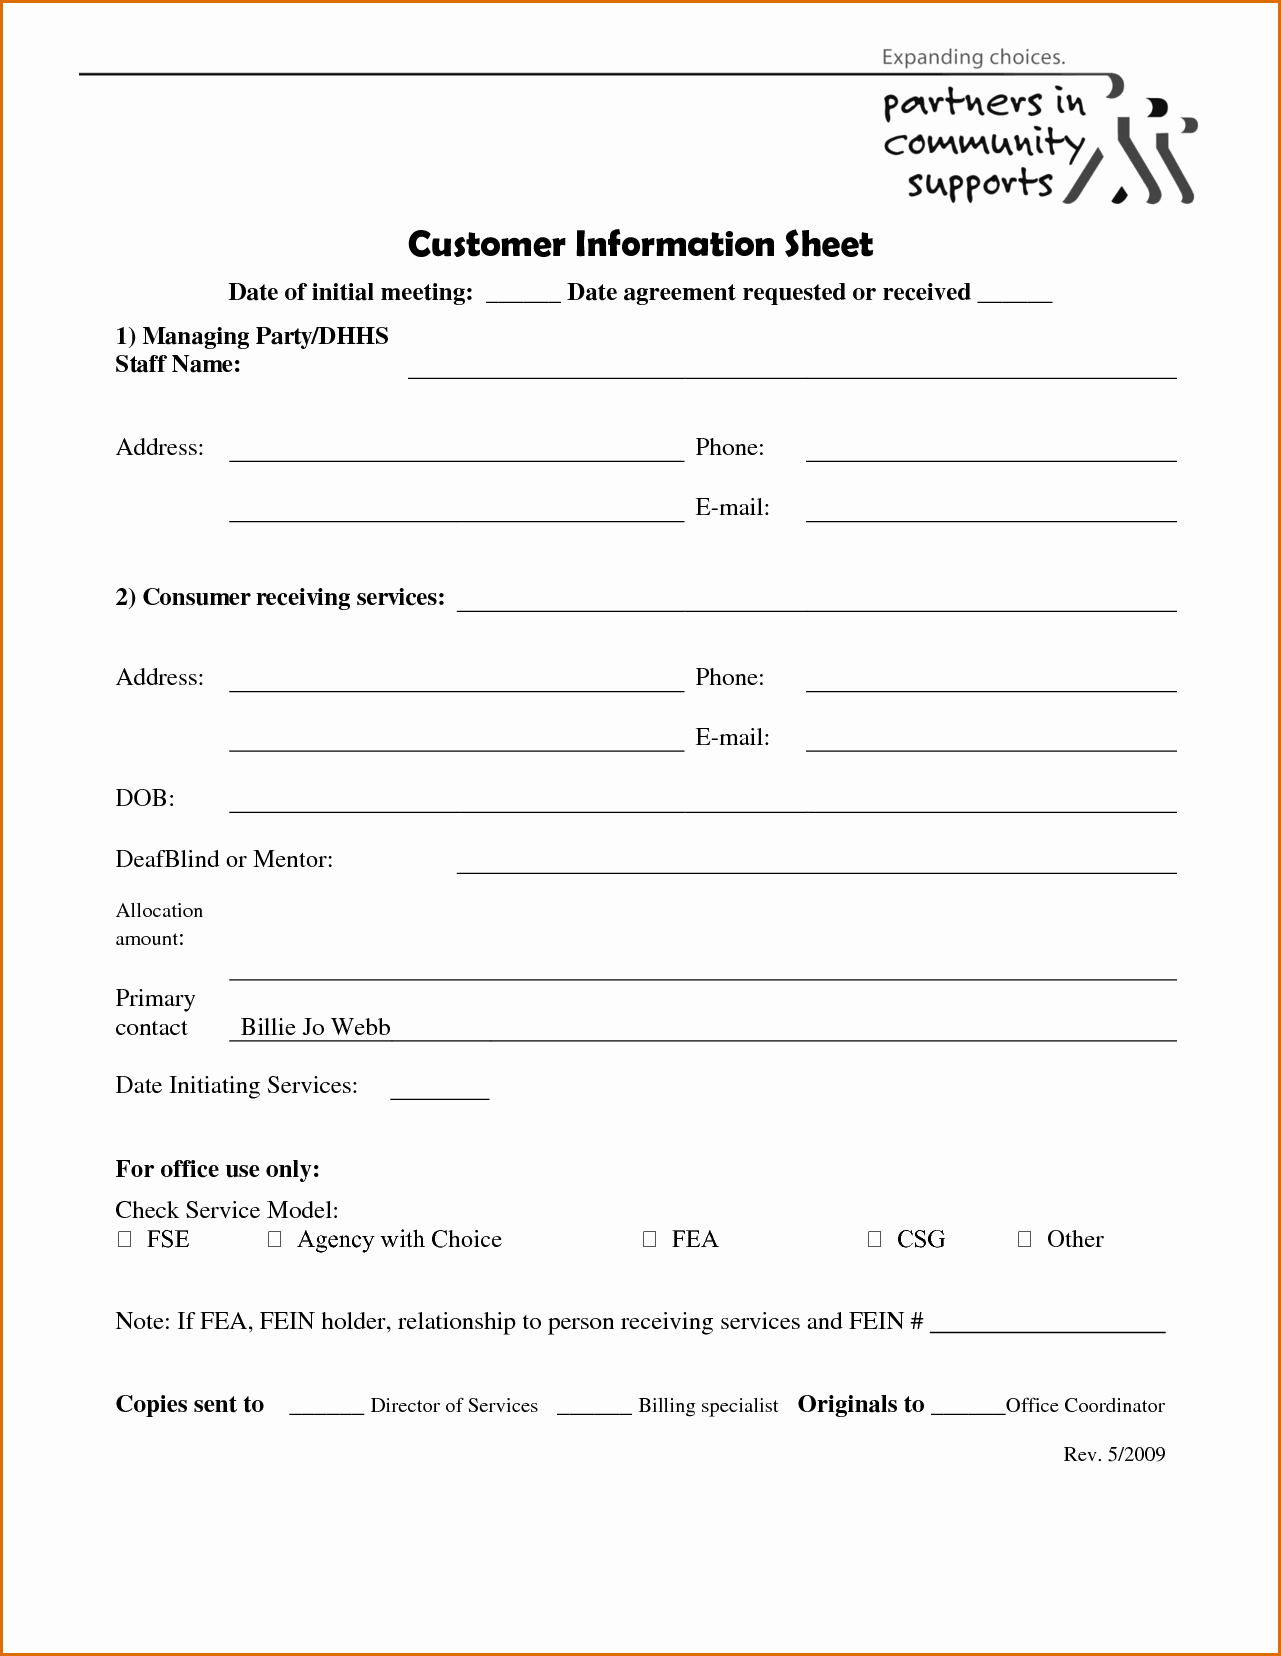 Customer Information Sheet Template Awesome 10 Client Information Sheet Template